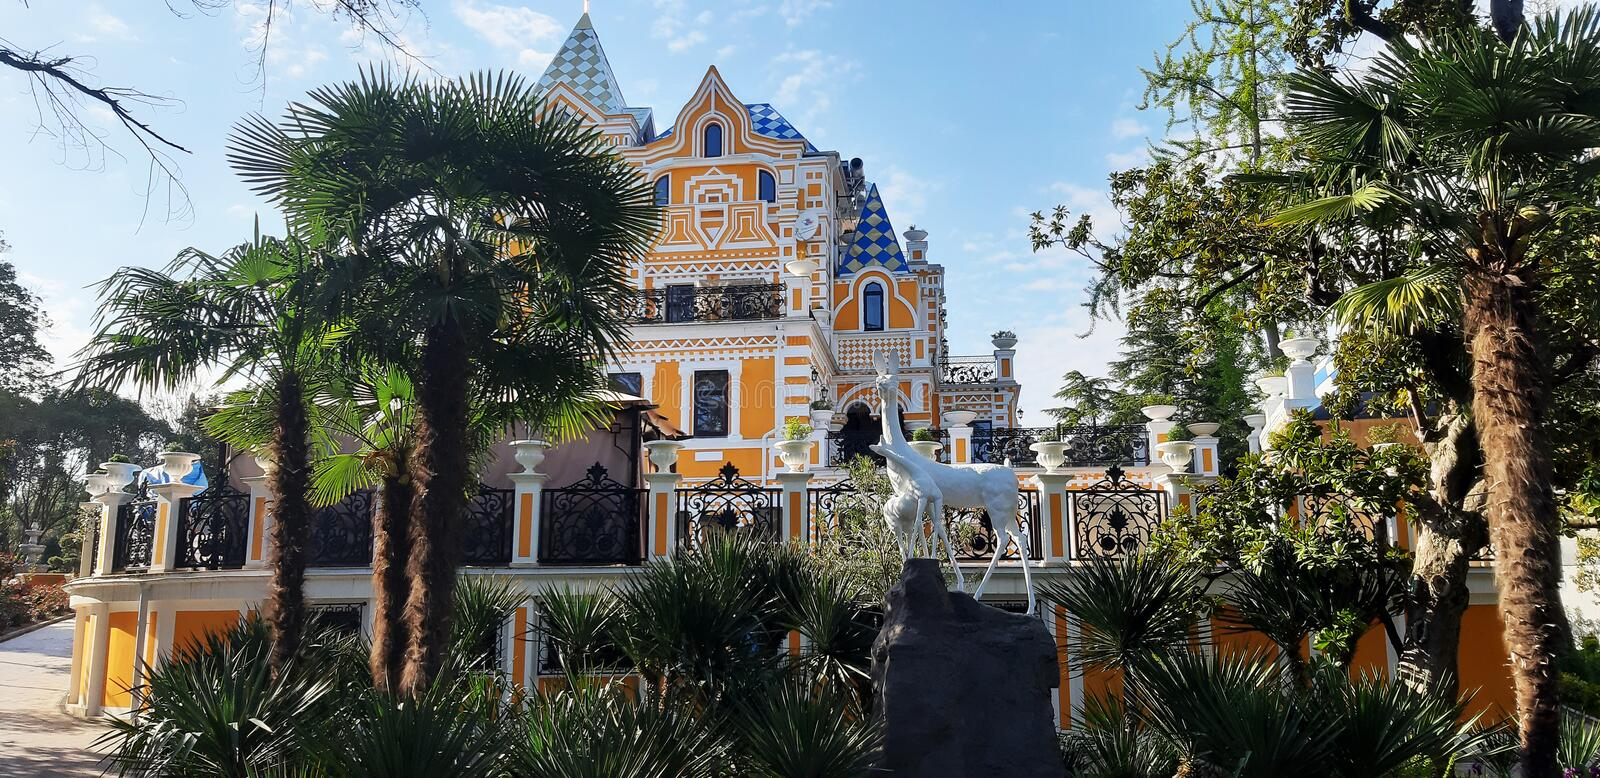 Monument to animals on the background of a beautiful house Riviera Park. Russia Sochi 04.28.2019 stock photo